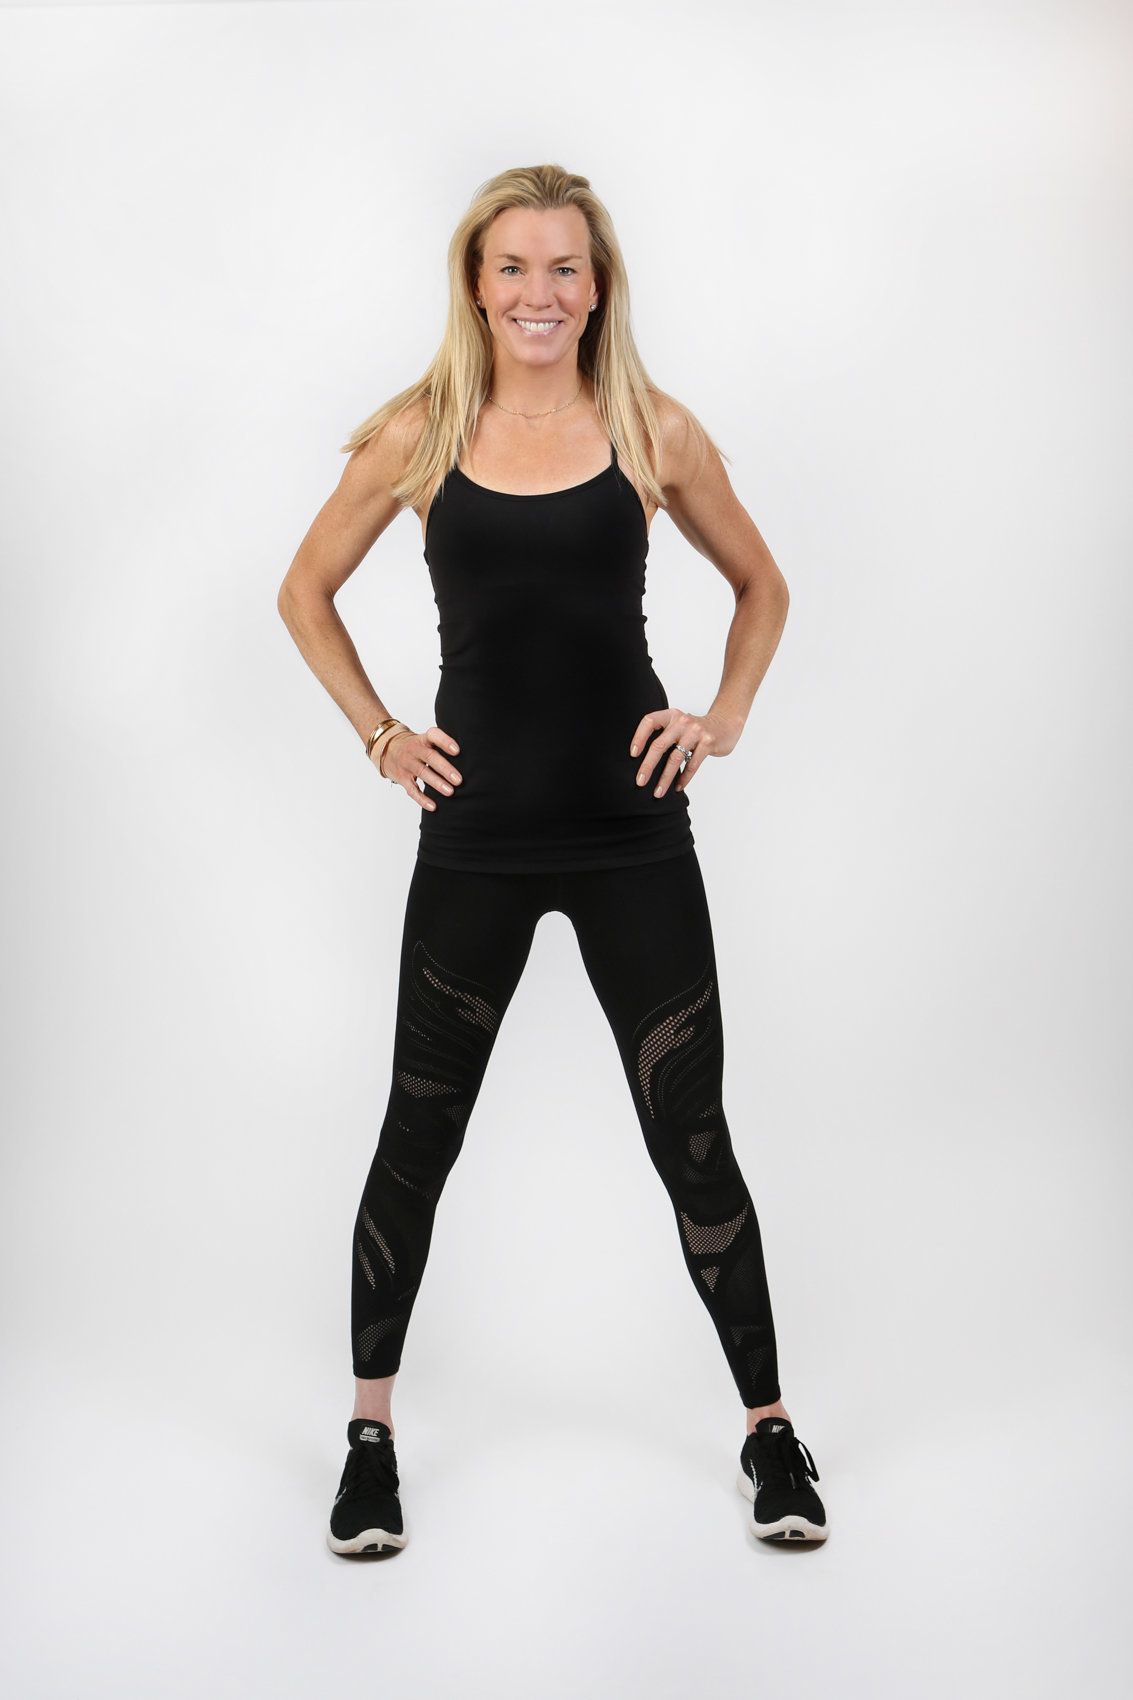 In Studio Fitness Photos at Lisa DeNeffe Photography